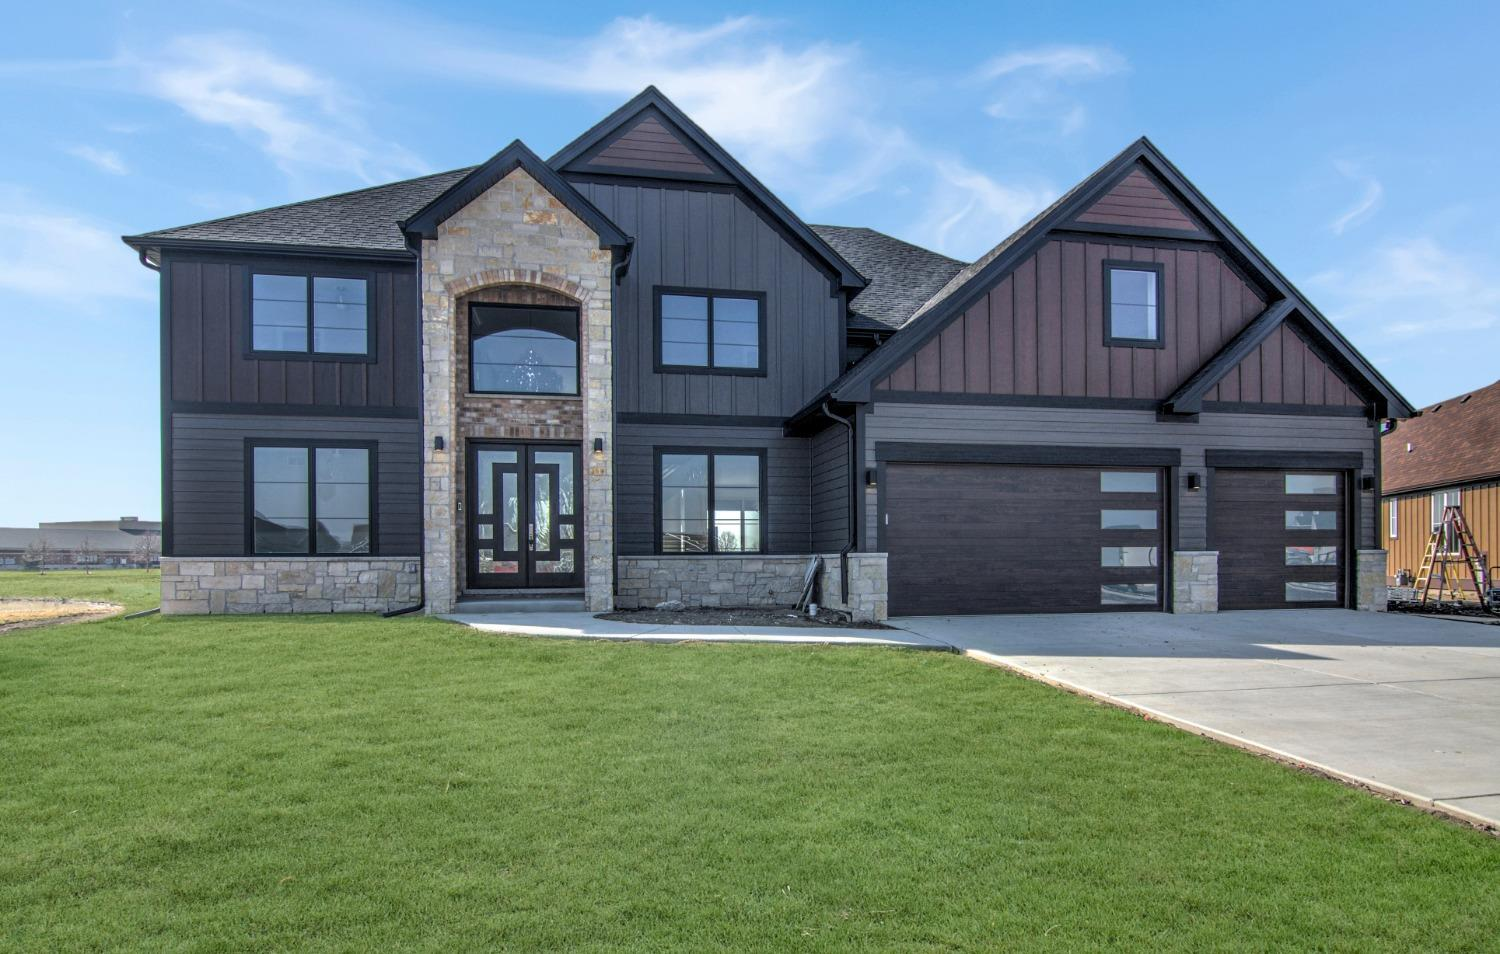 3046 SqFt House In Candlelight Trails